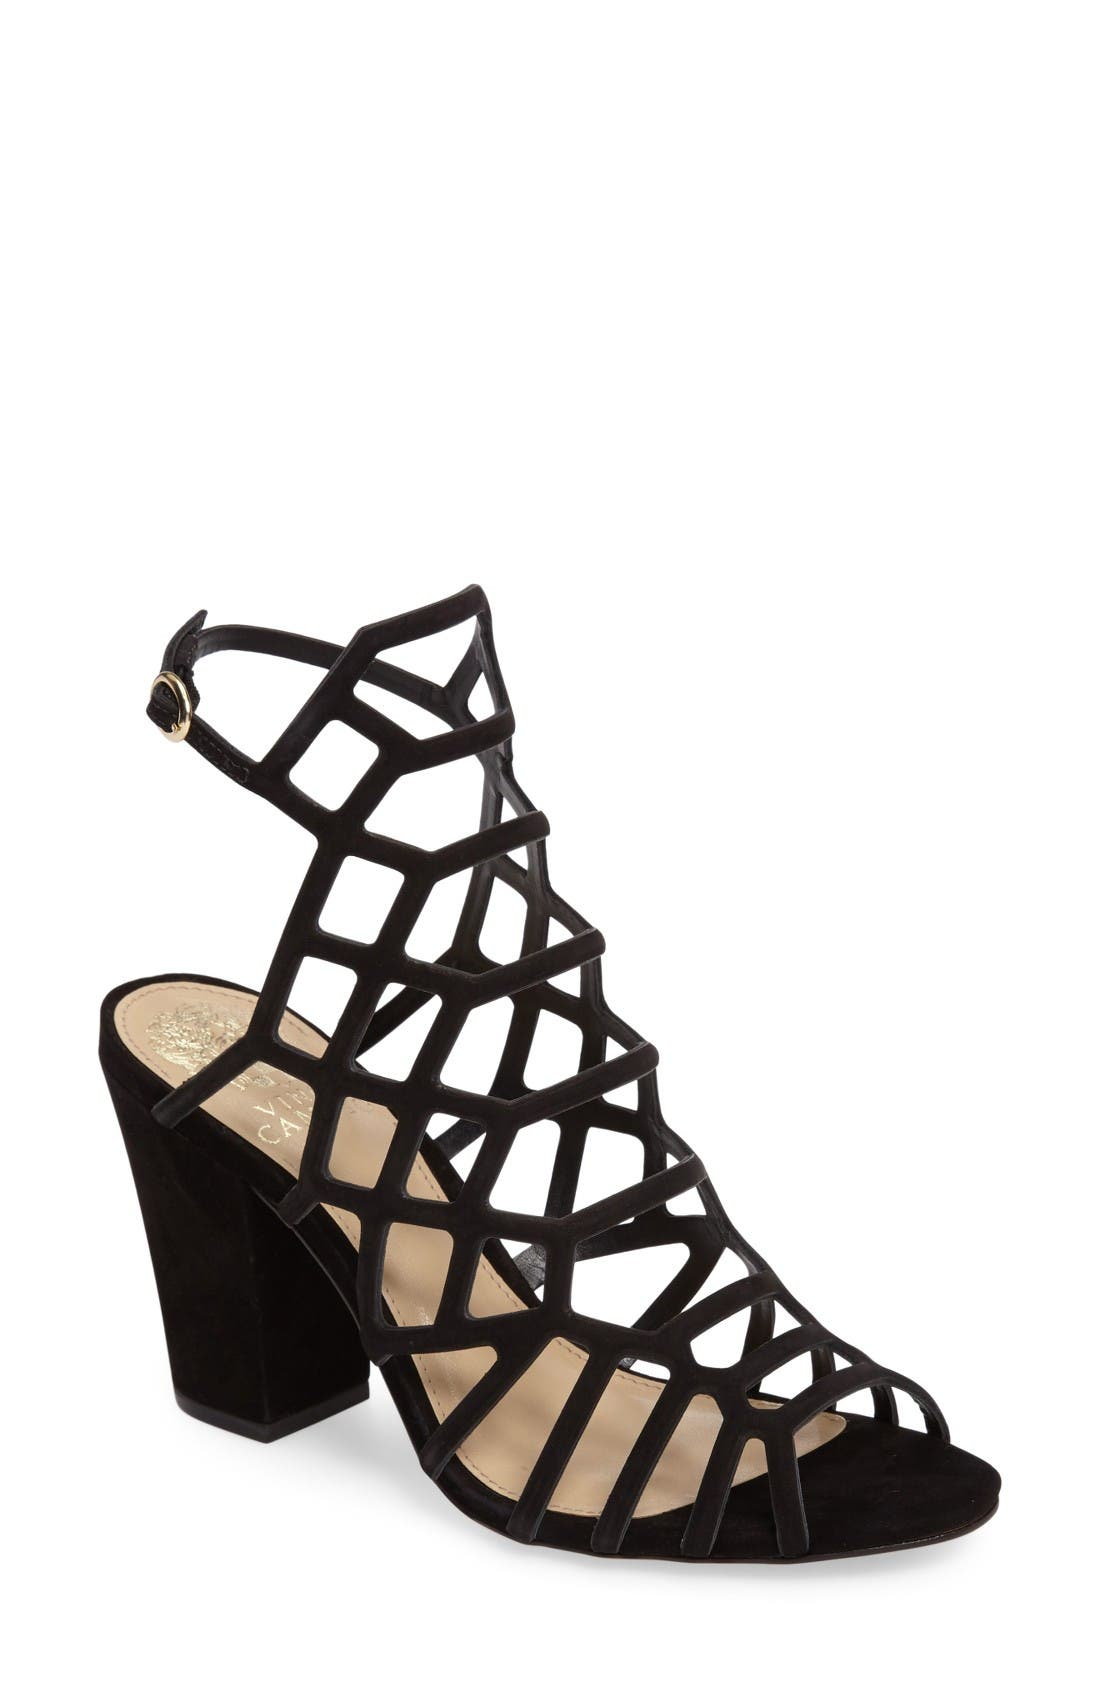 Alternate Image 1 Selected - Vince Camuto Naveen Cage Sandal (Women)